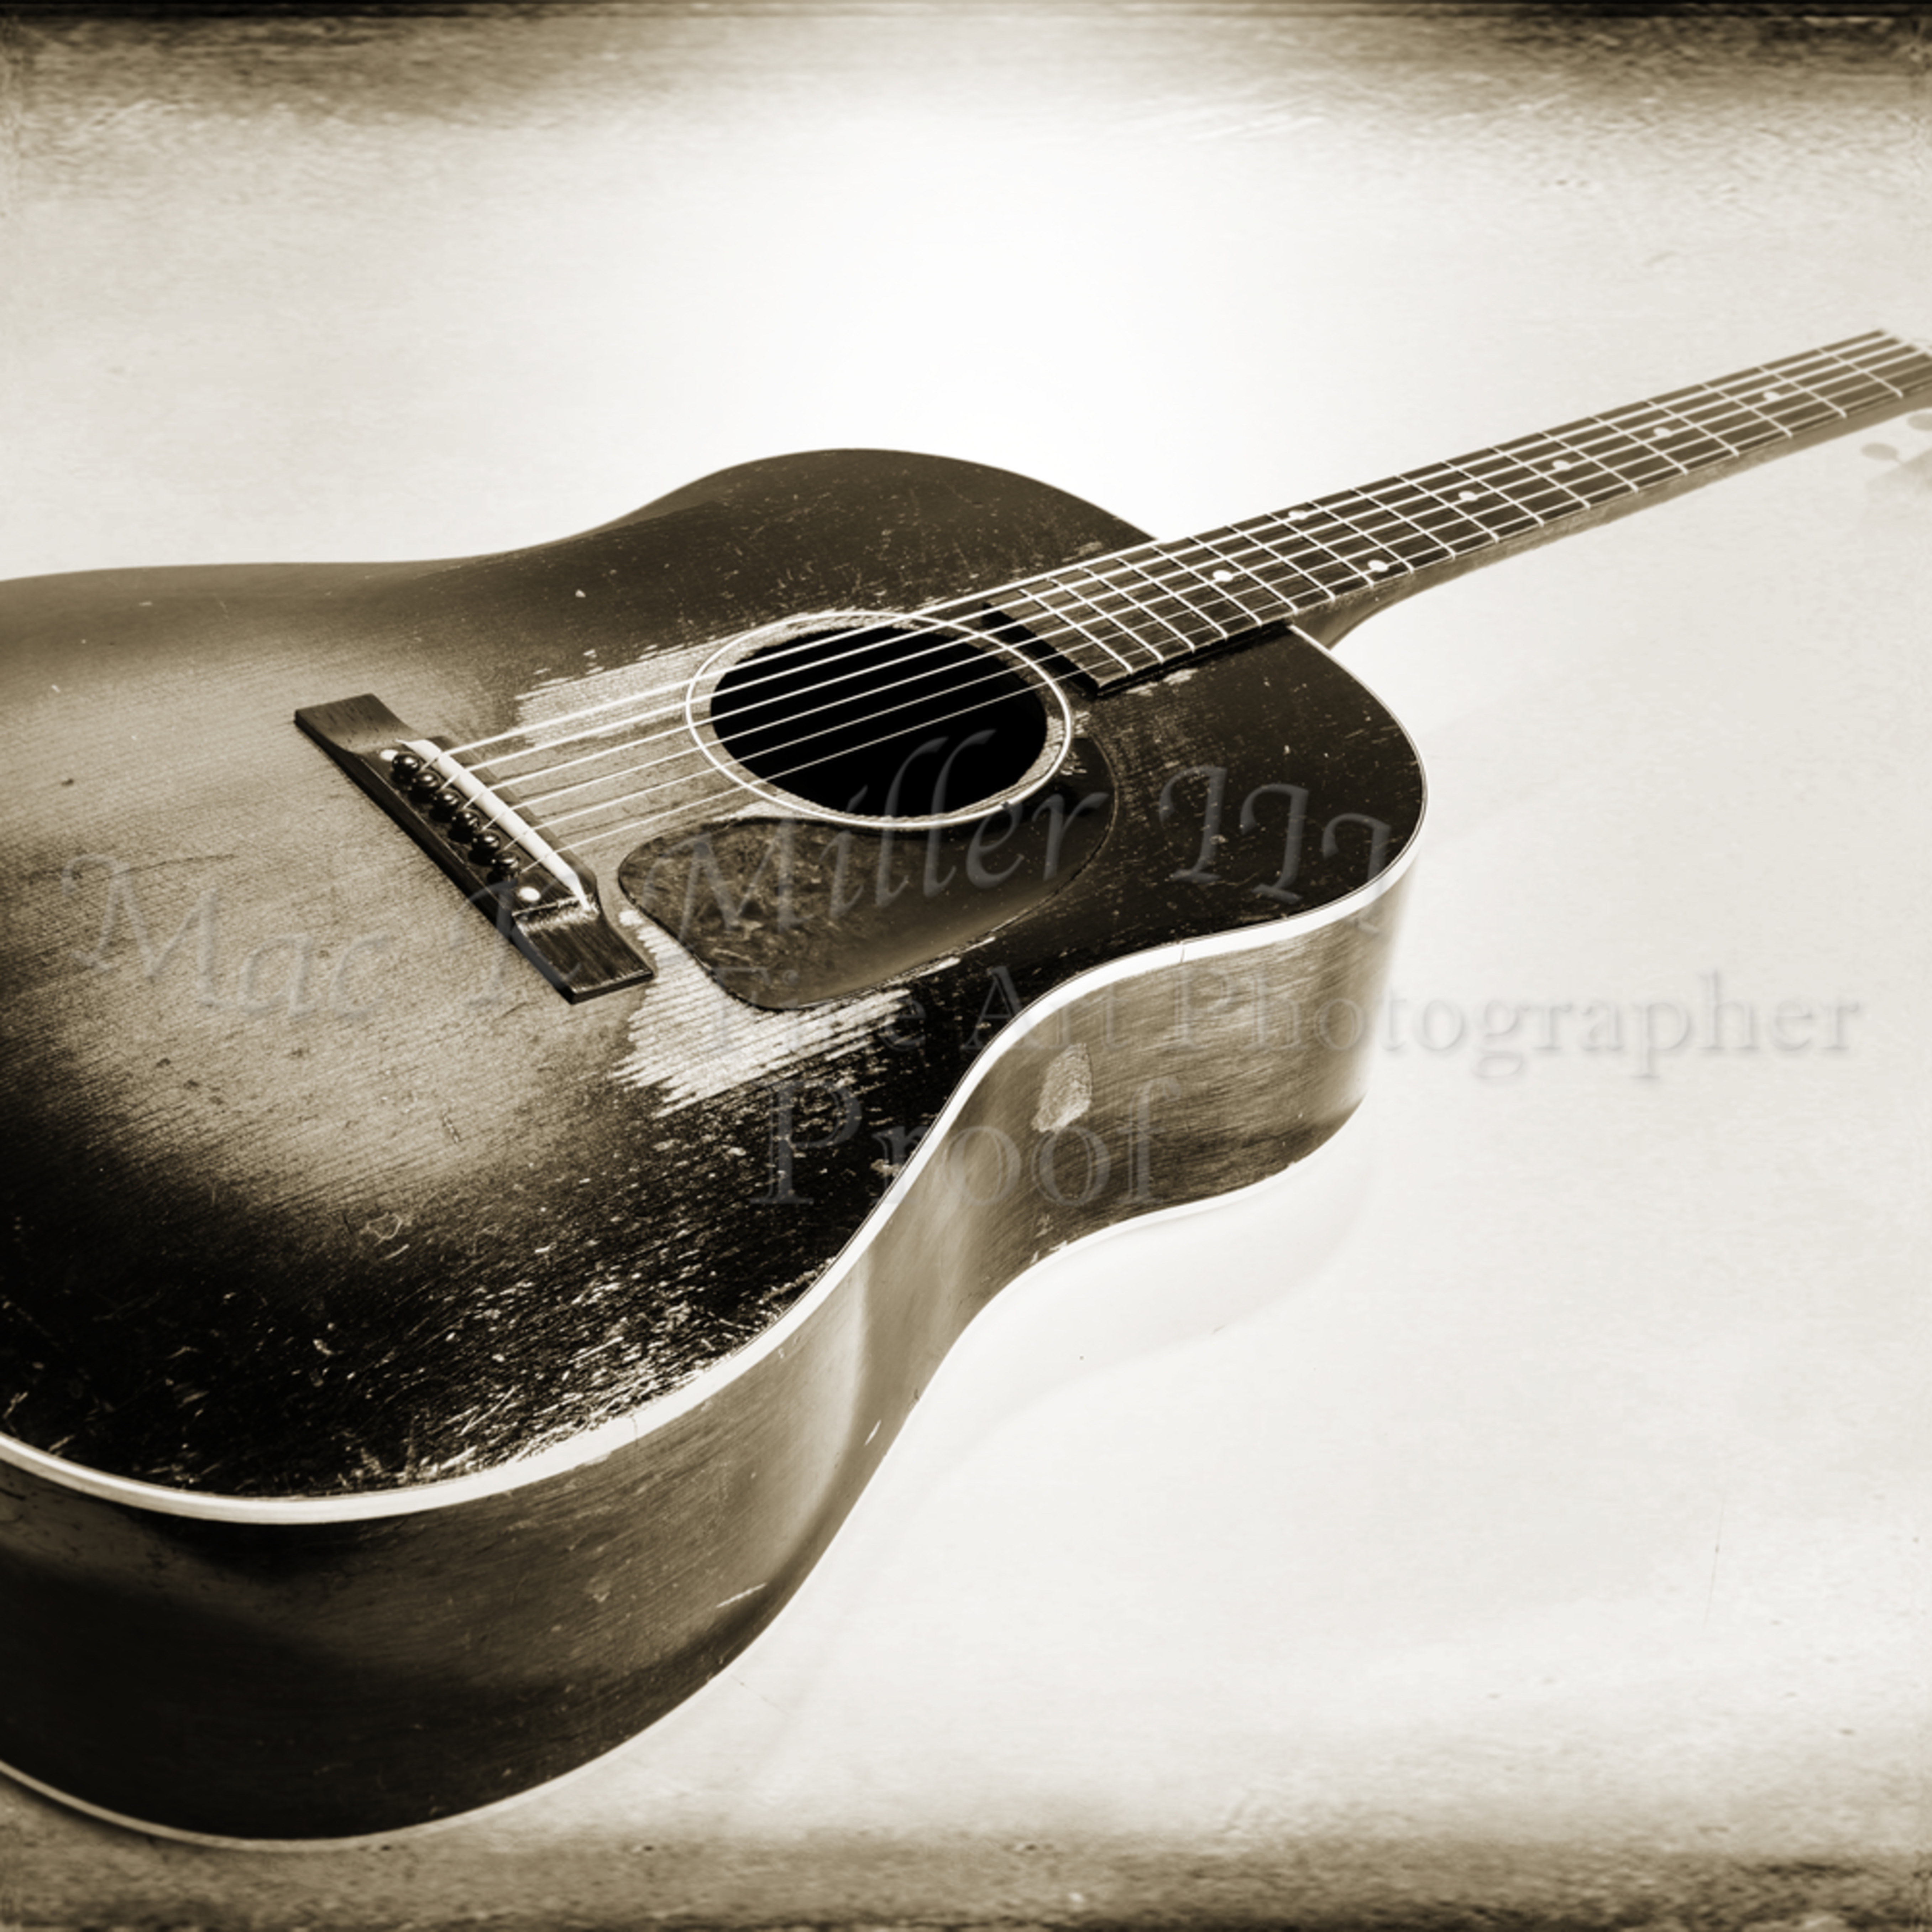 440.1834 gibson j45 in black and white mgyrd3